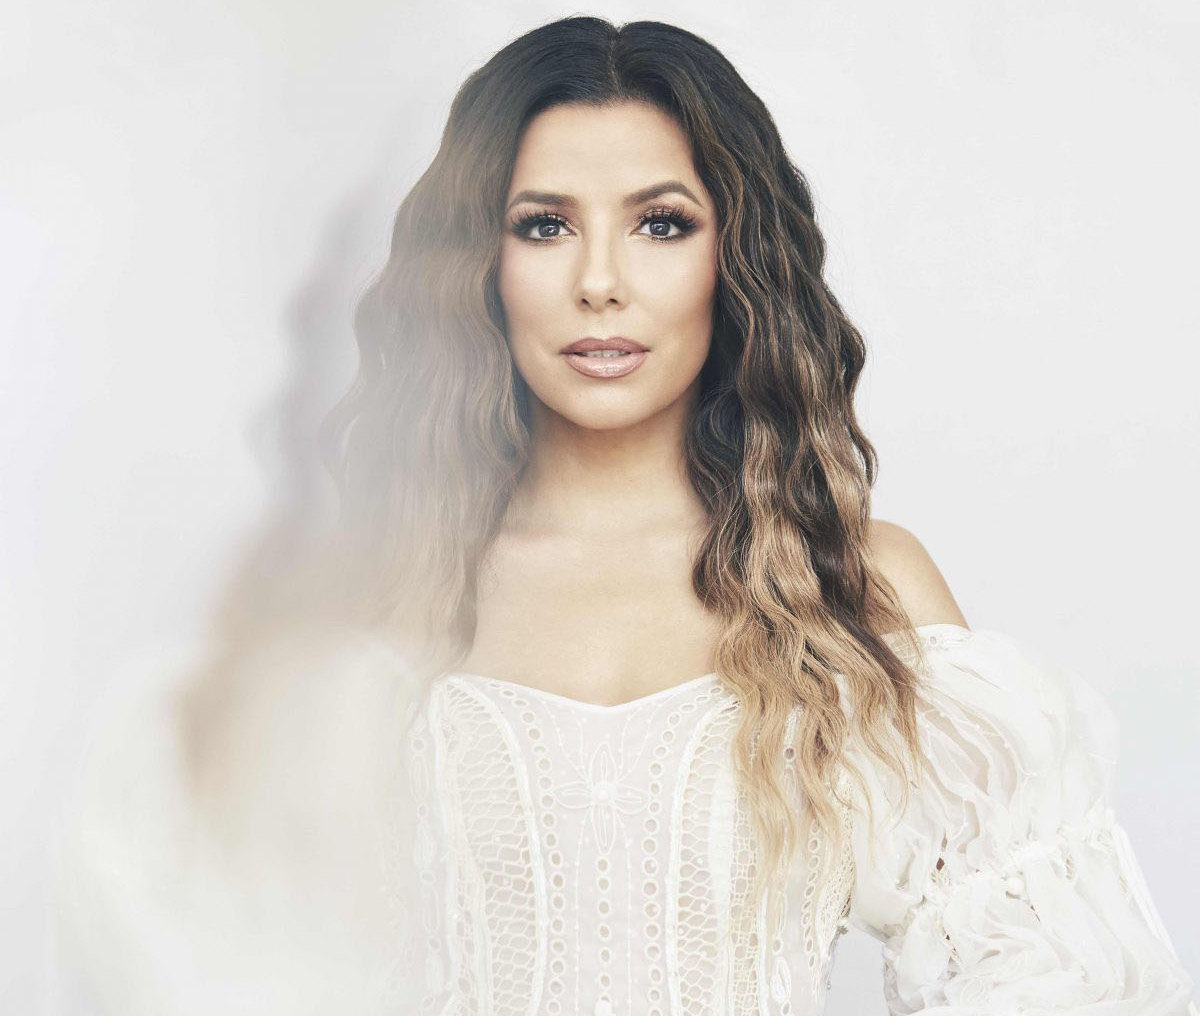 Eva Longoria by John Russo for Haute Living Magazine August/September 2019